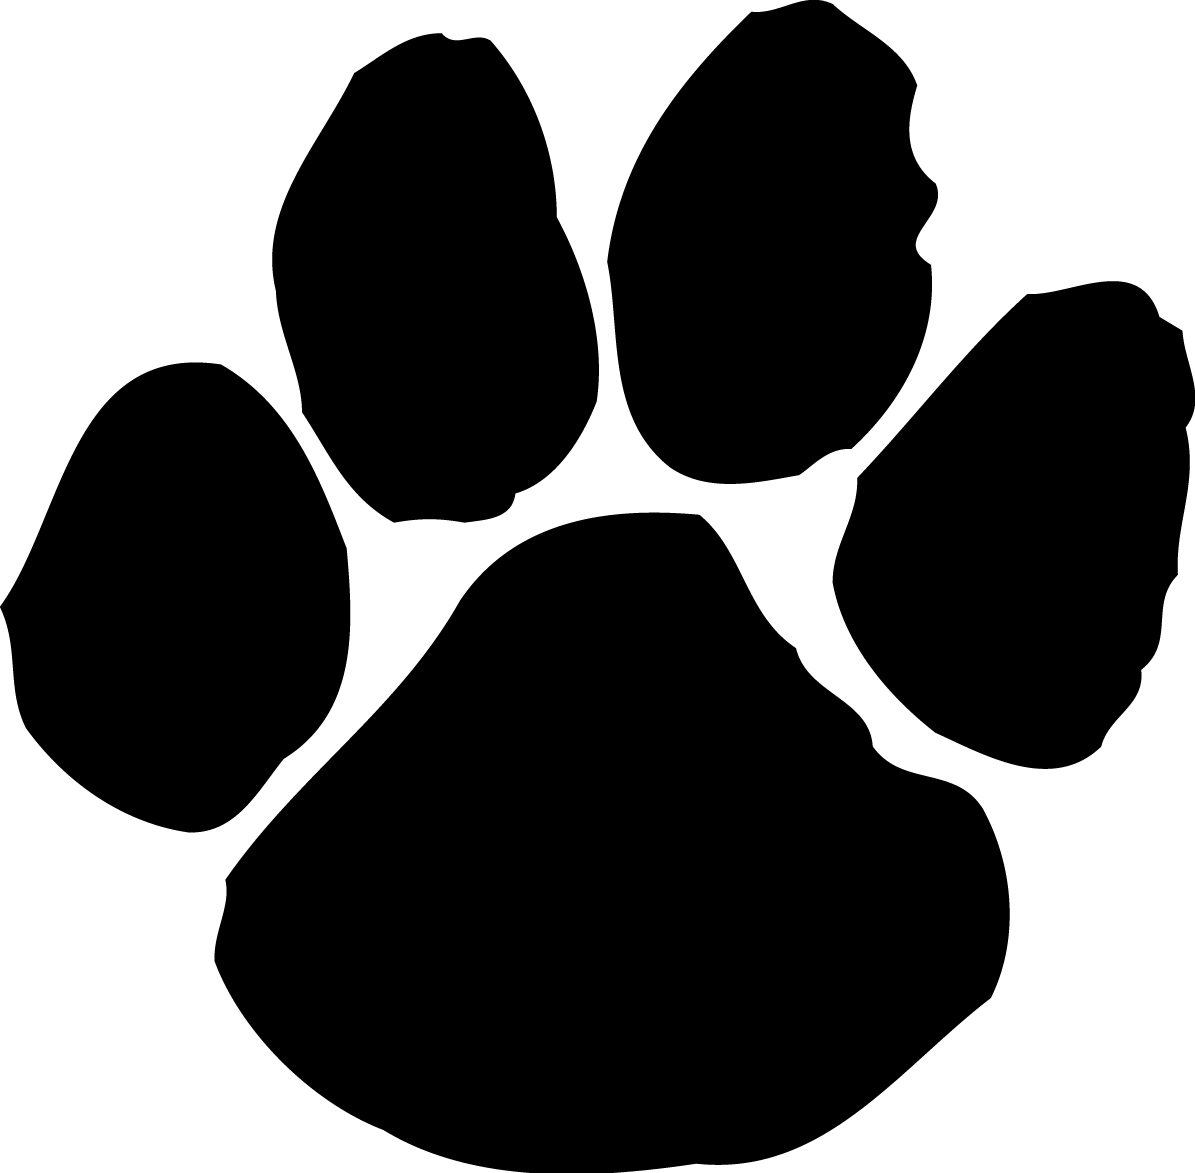 Puppy paws clipart png stock Panther Paws Clipart | Free download best Panther Paws Clipart on ... png stock